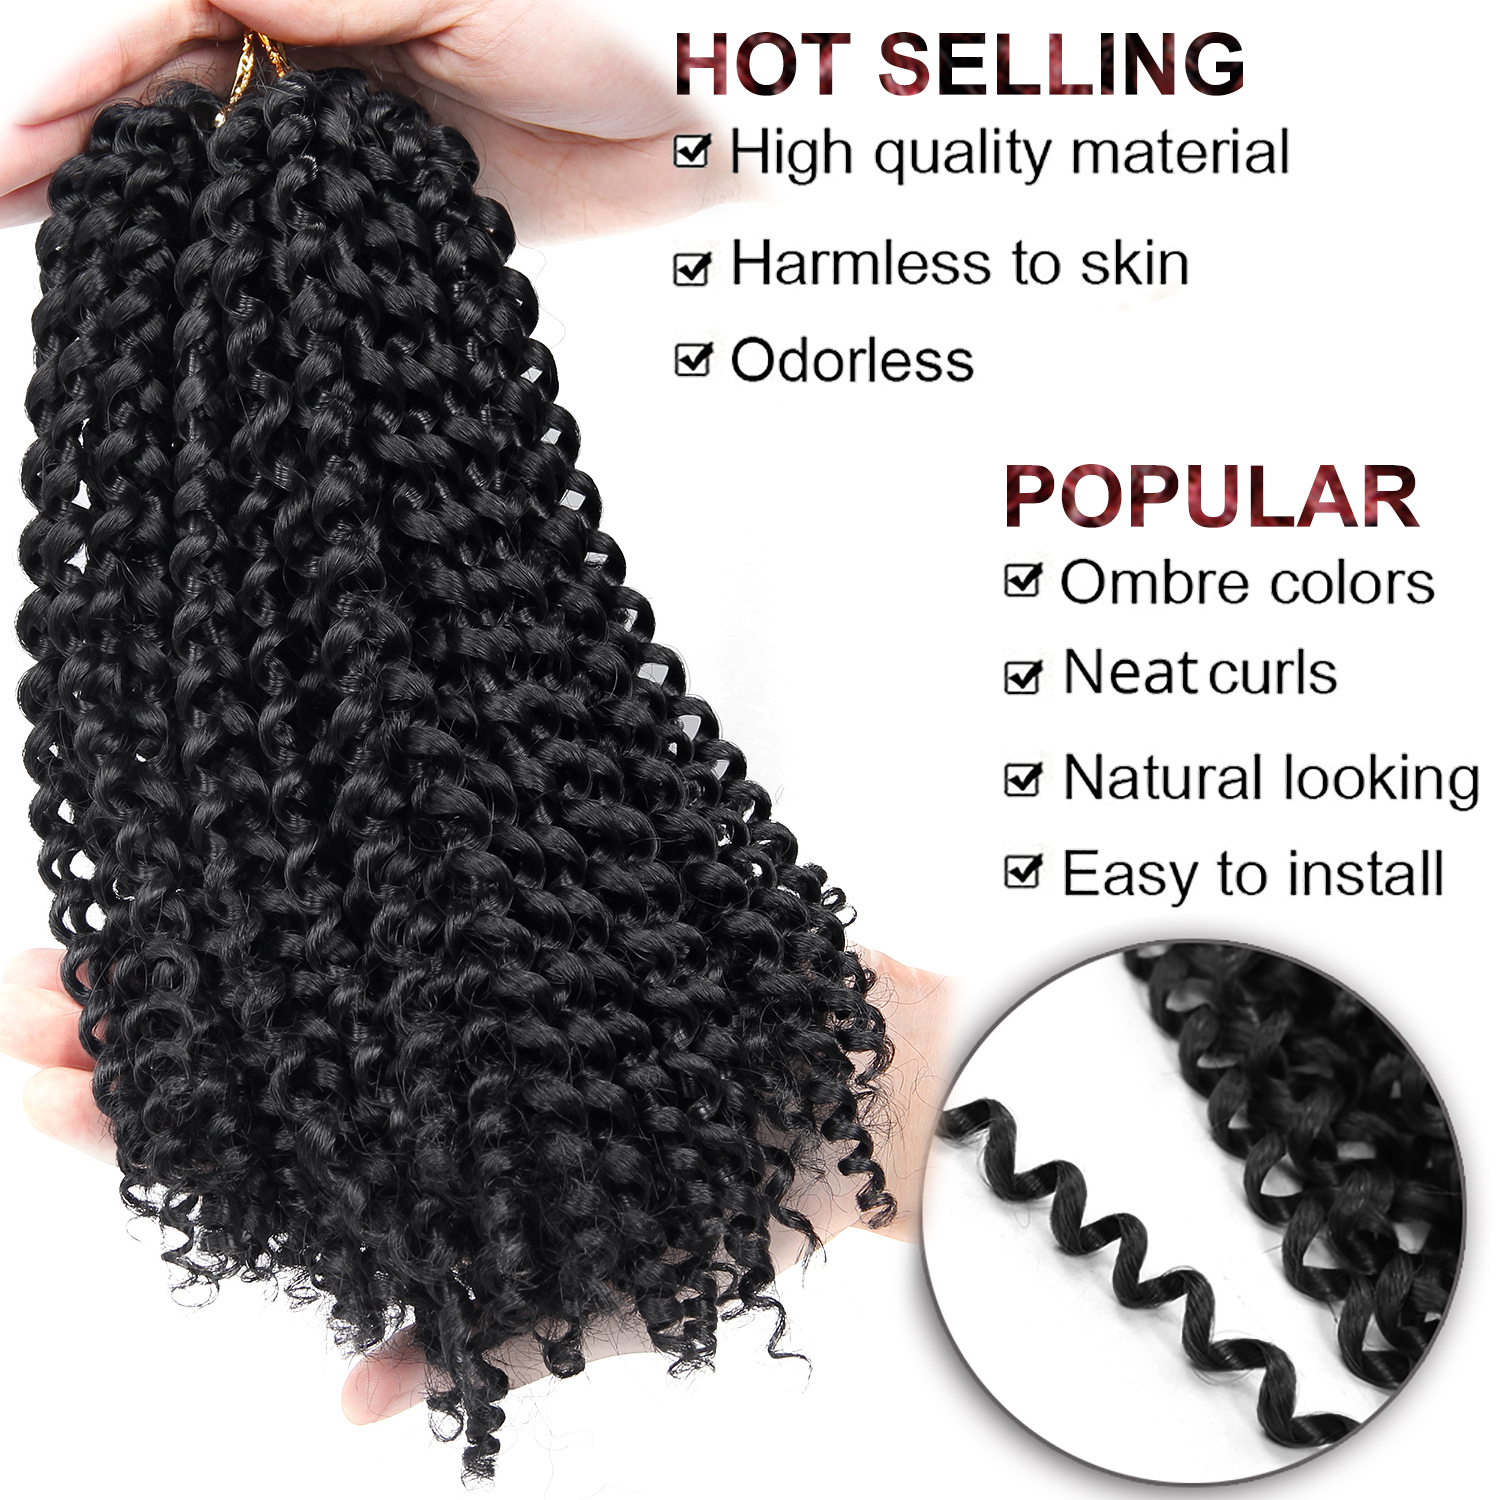 YxCheris Synthetic Crochet Hair jerry curl bundles weave Braiding hair with Ombre Crochet Braids Hair Extension bulk hair